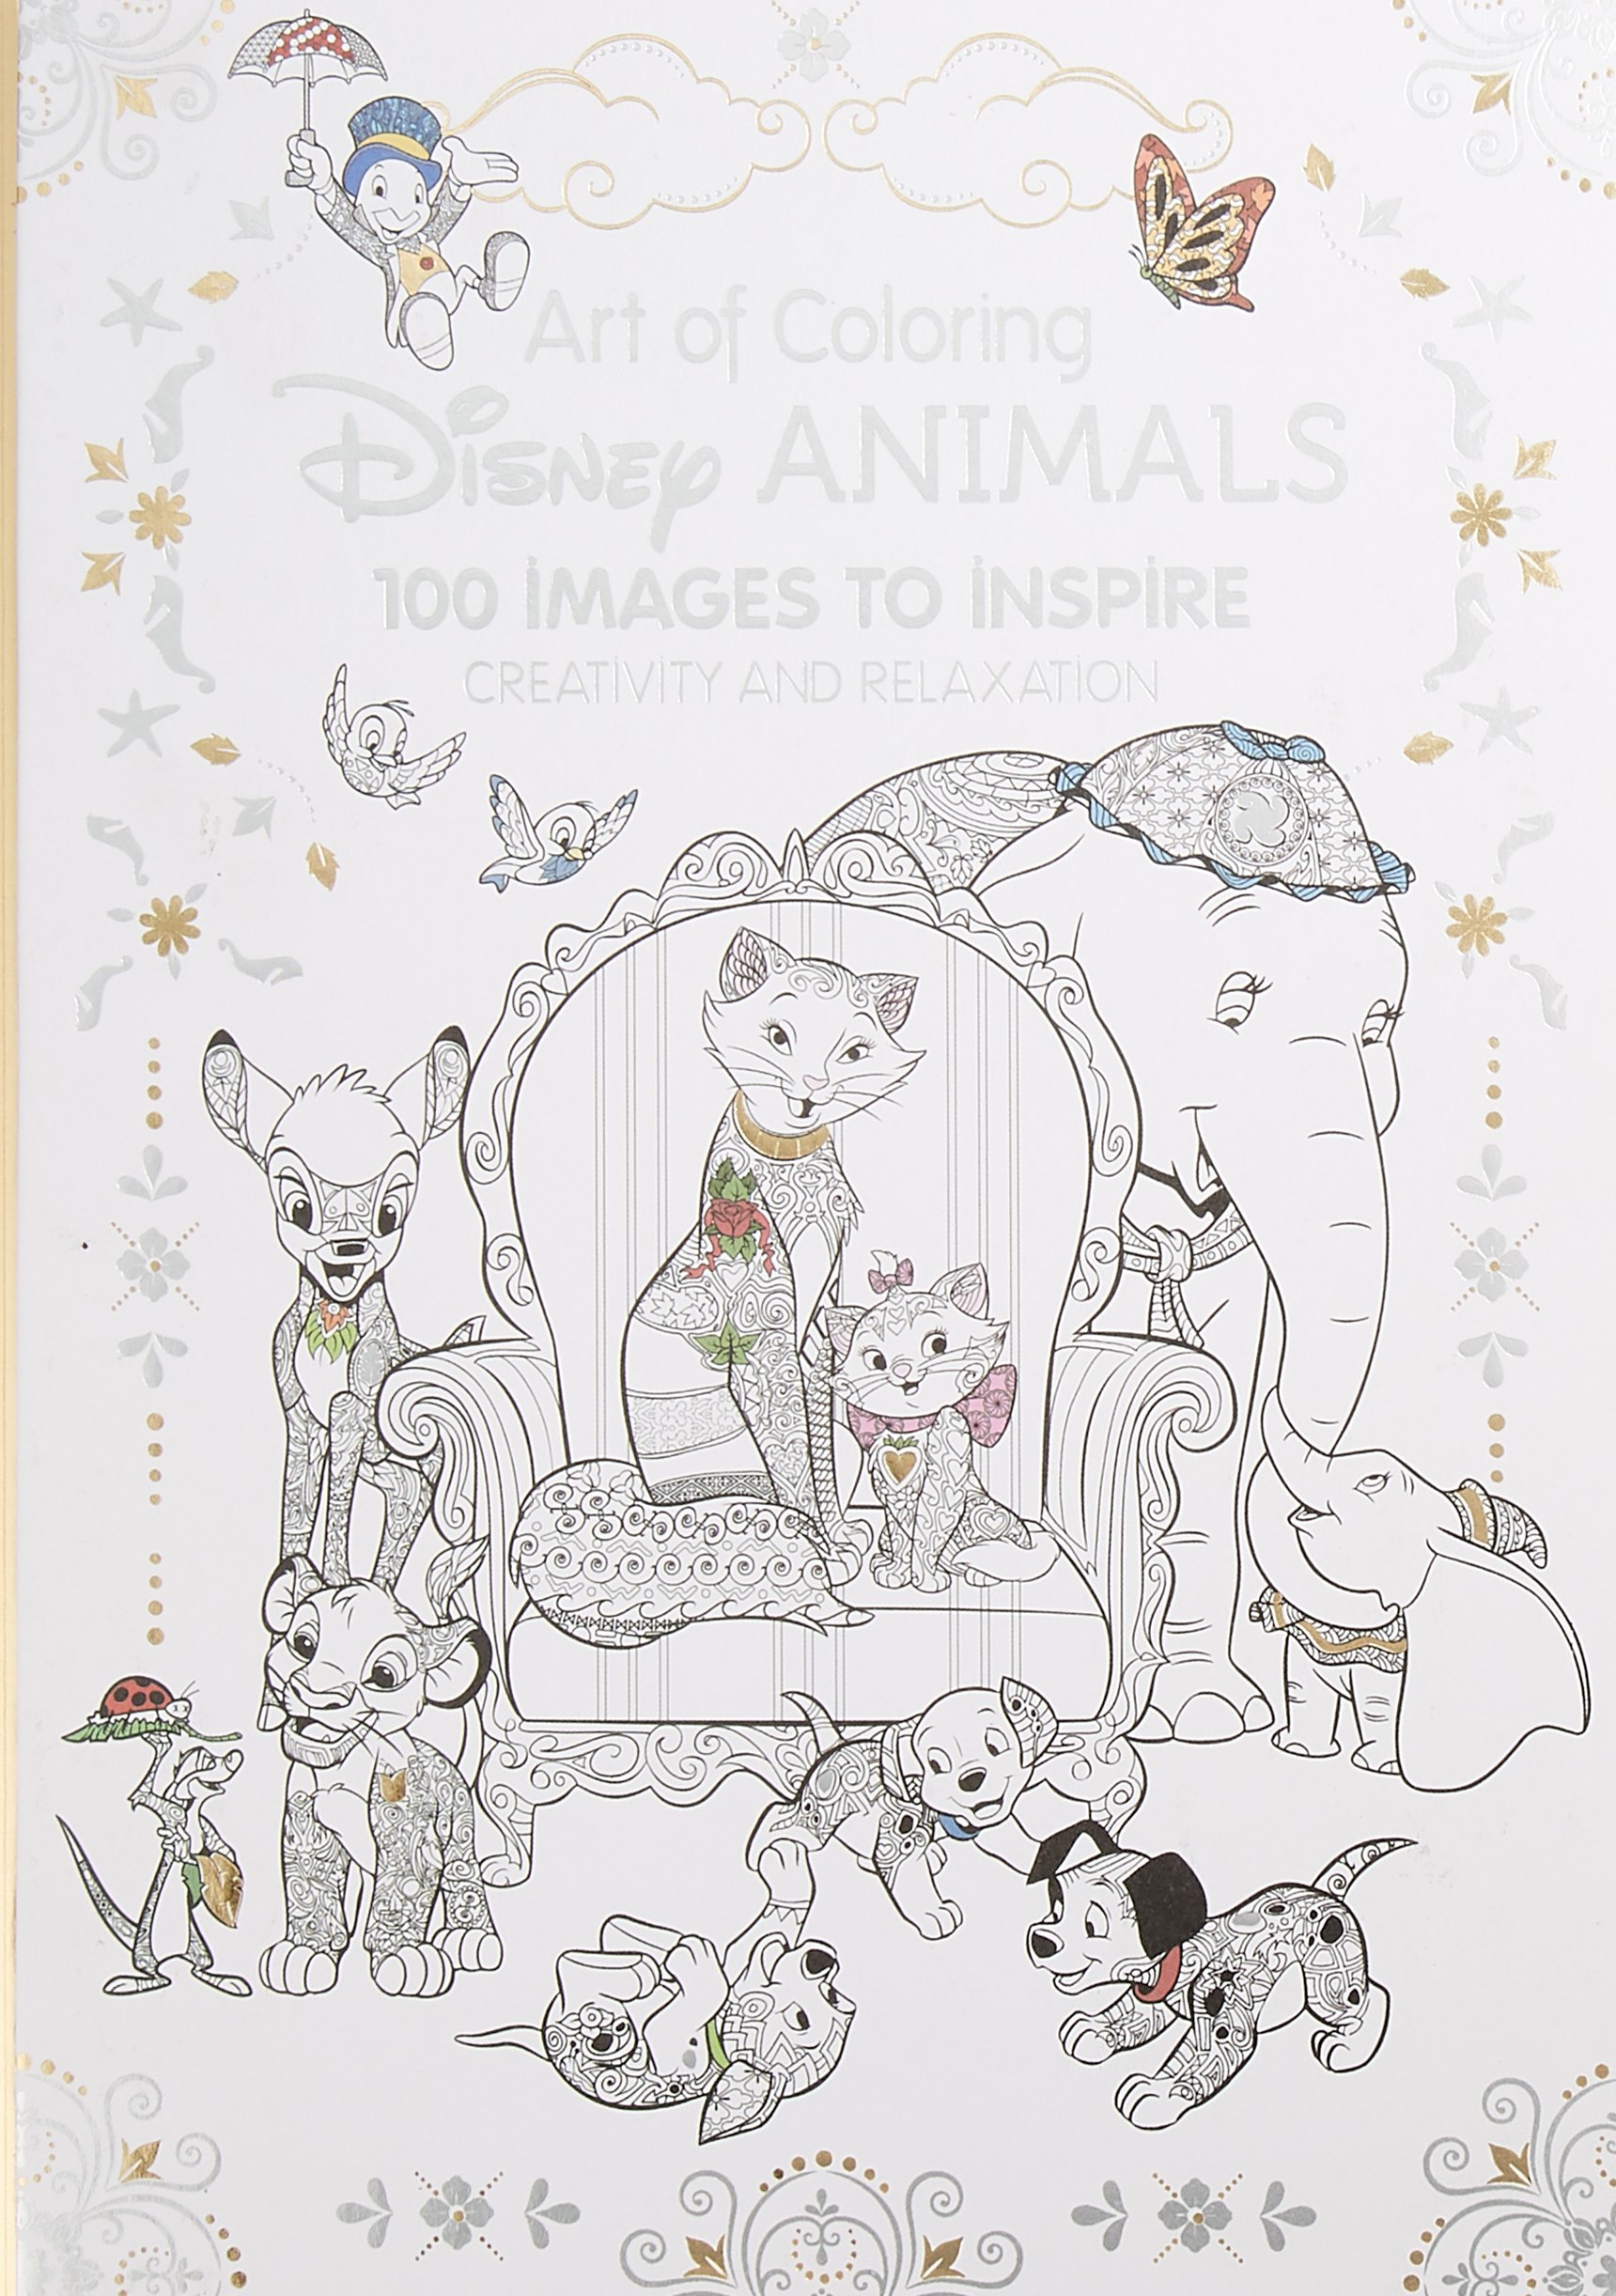 Amazon Com Art Of Coloring Disney Animals 100 Images To Inspire